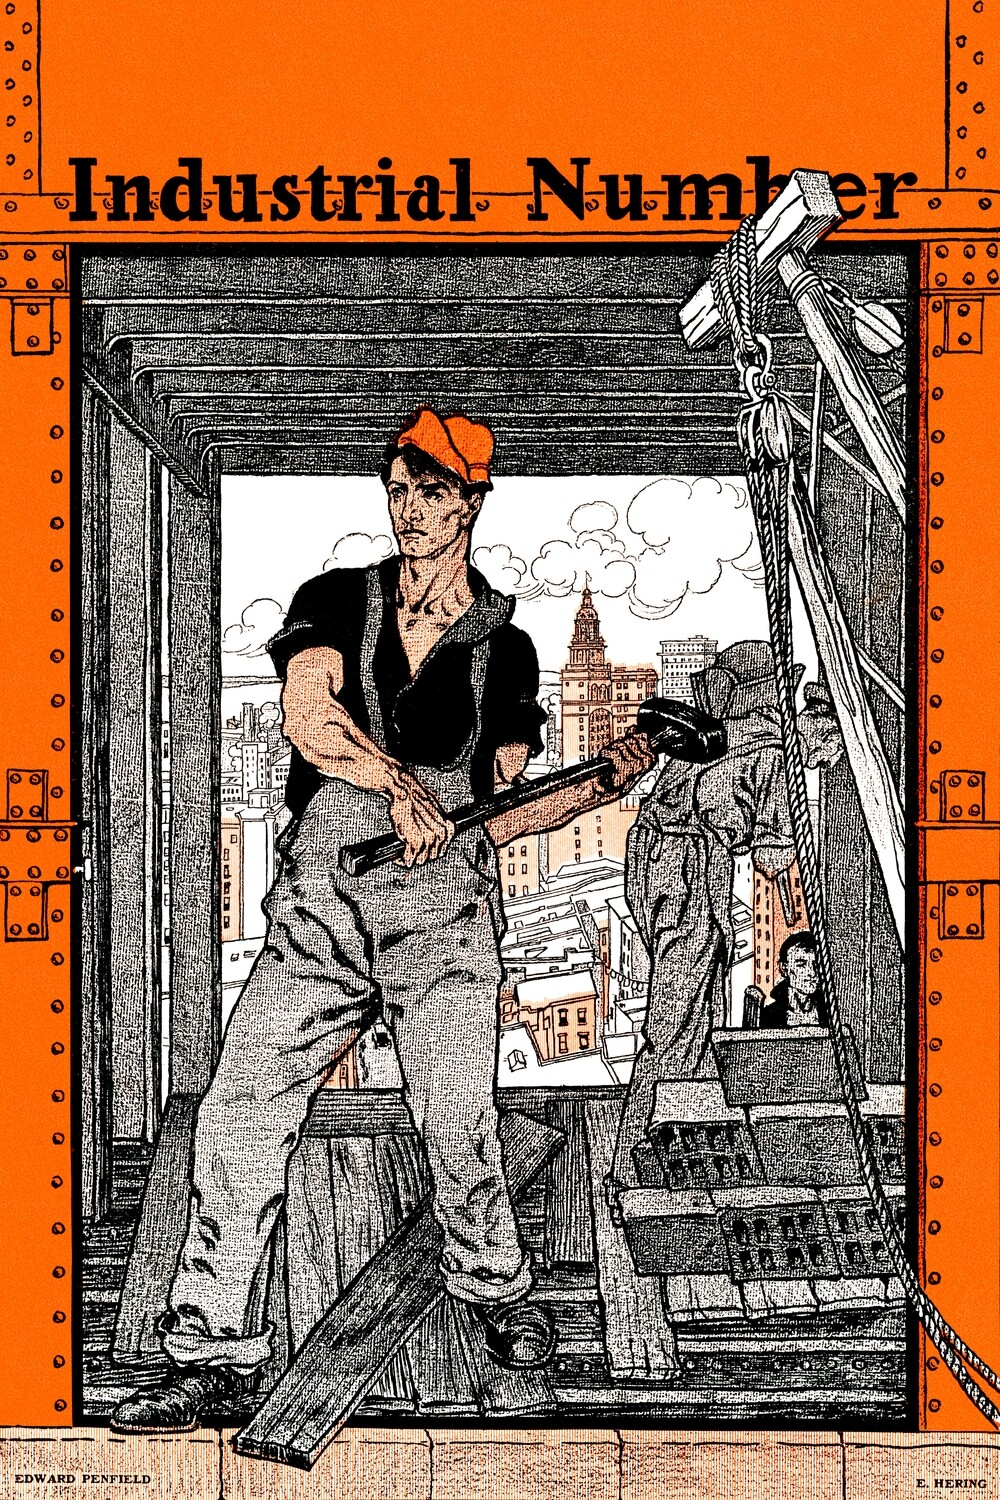 Edward Penfield | Industrial Number 1901